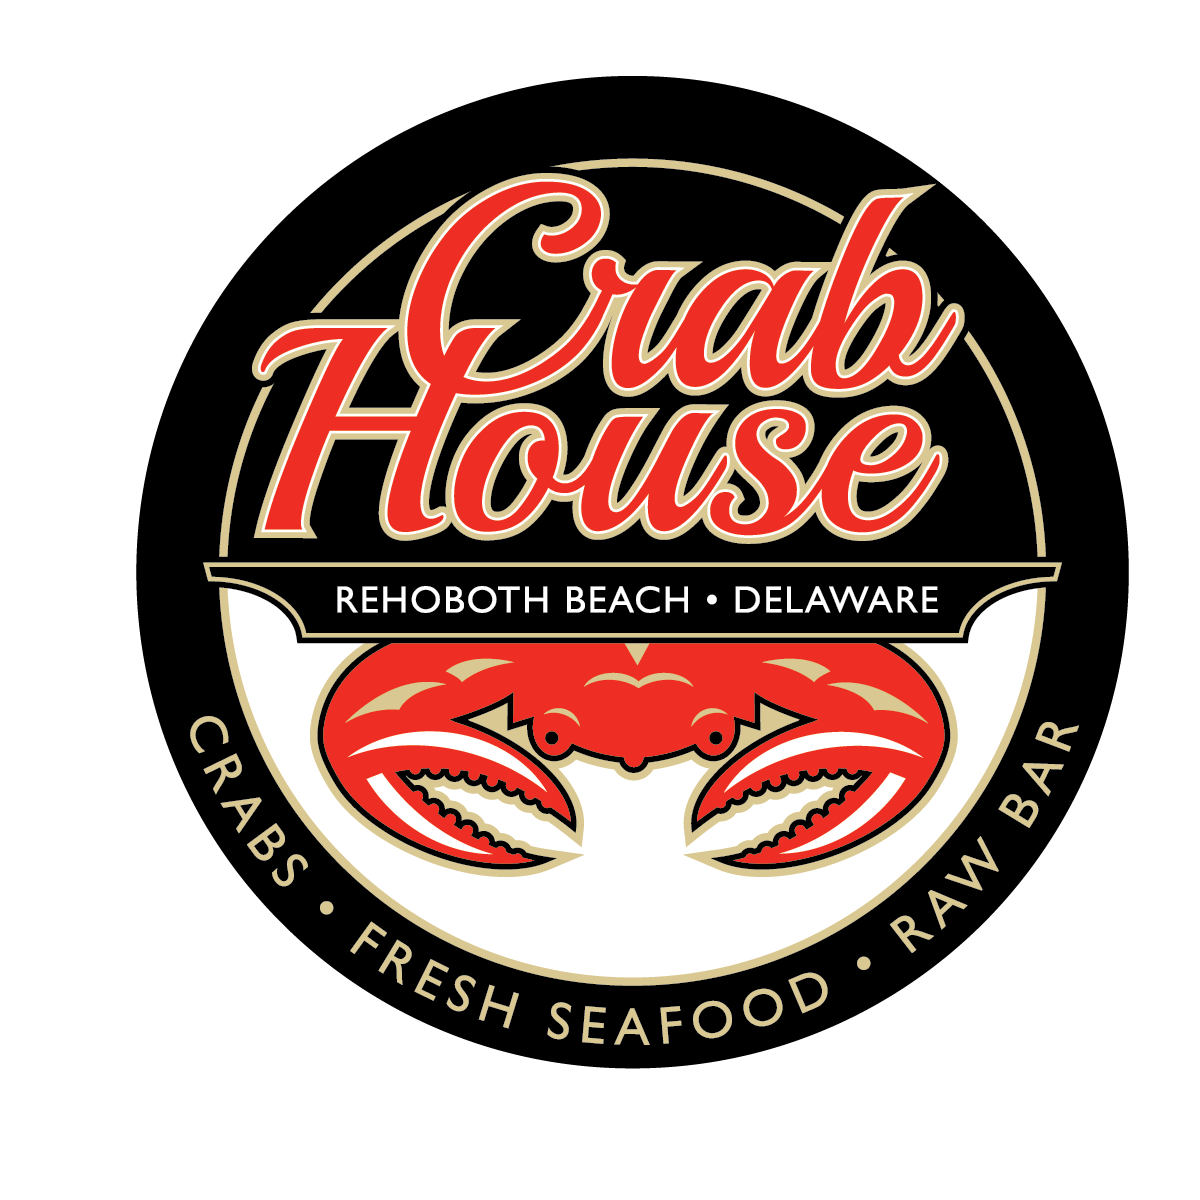 The Crab House | Rehoboth Beach, DE